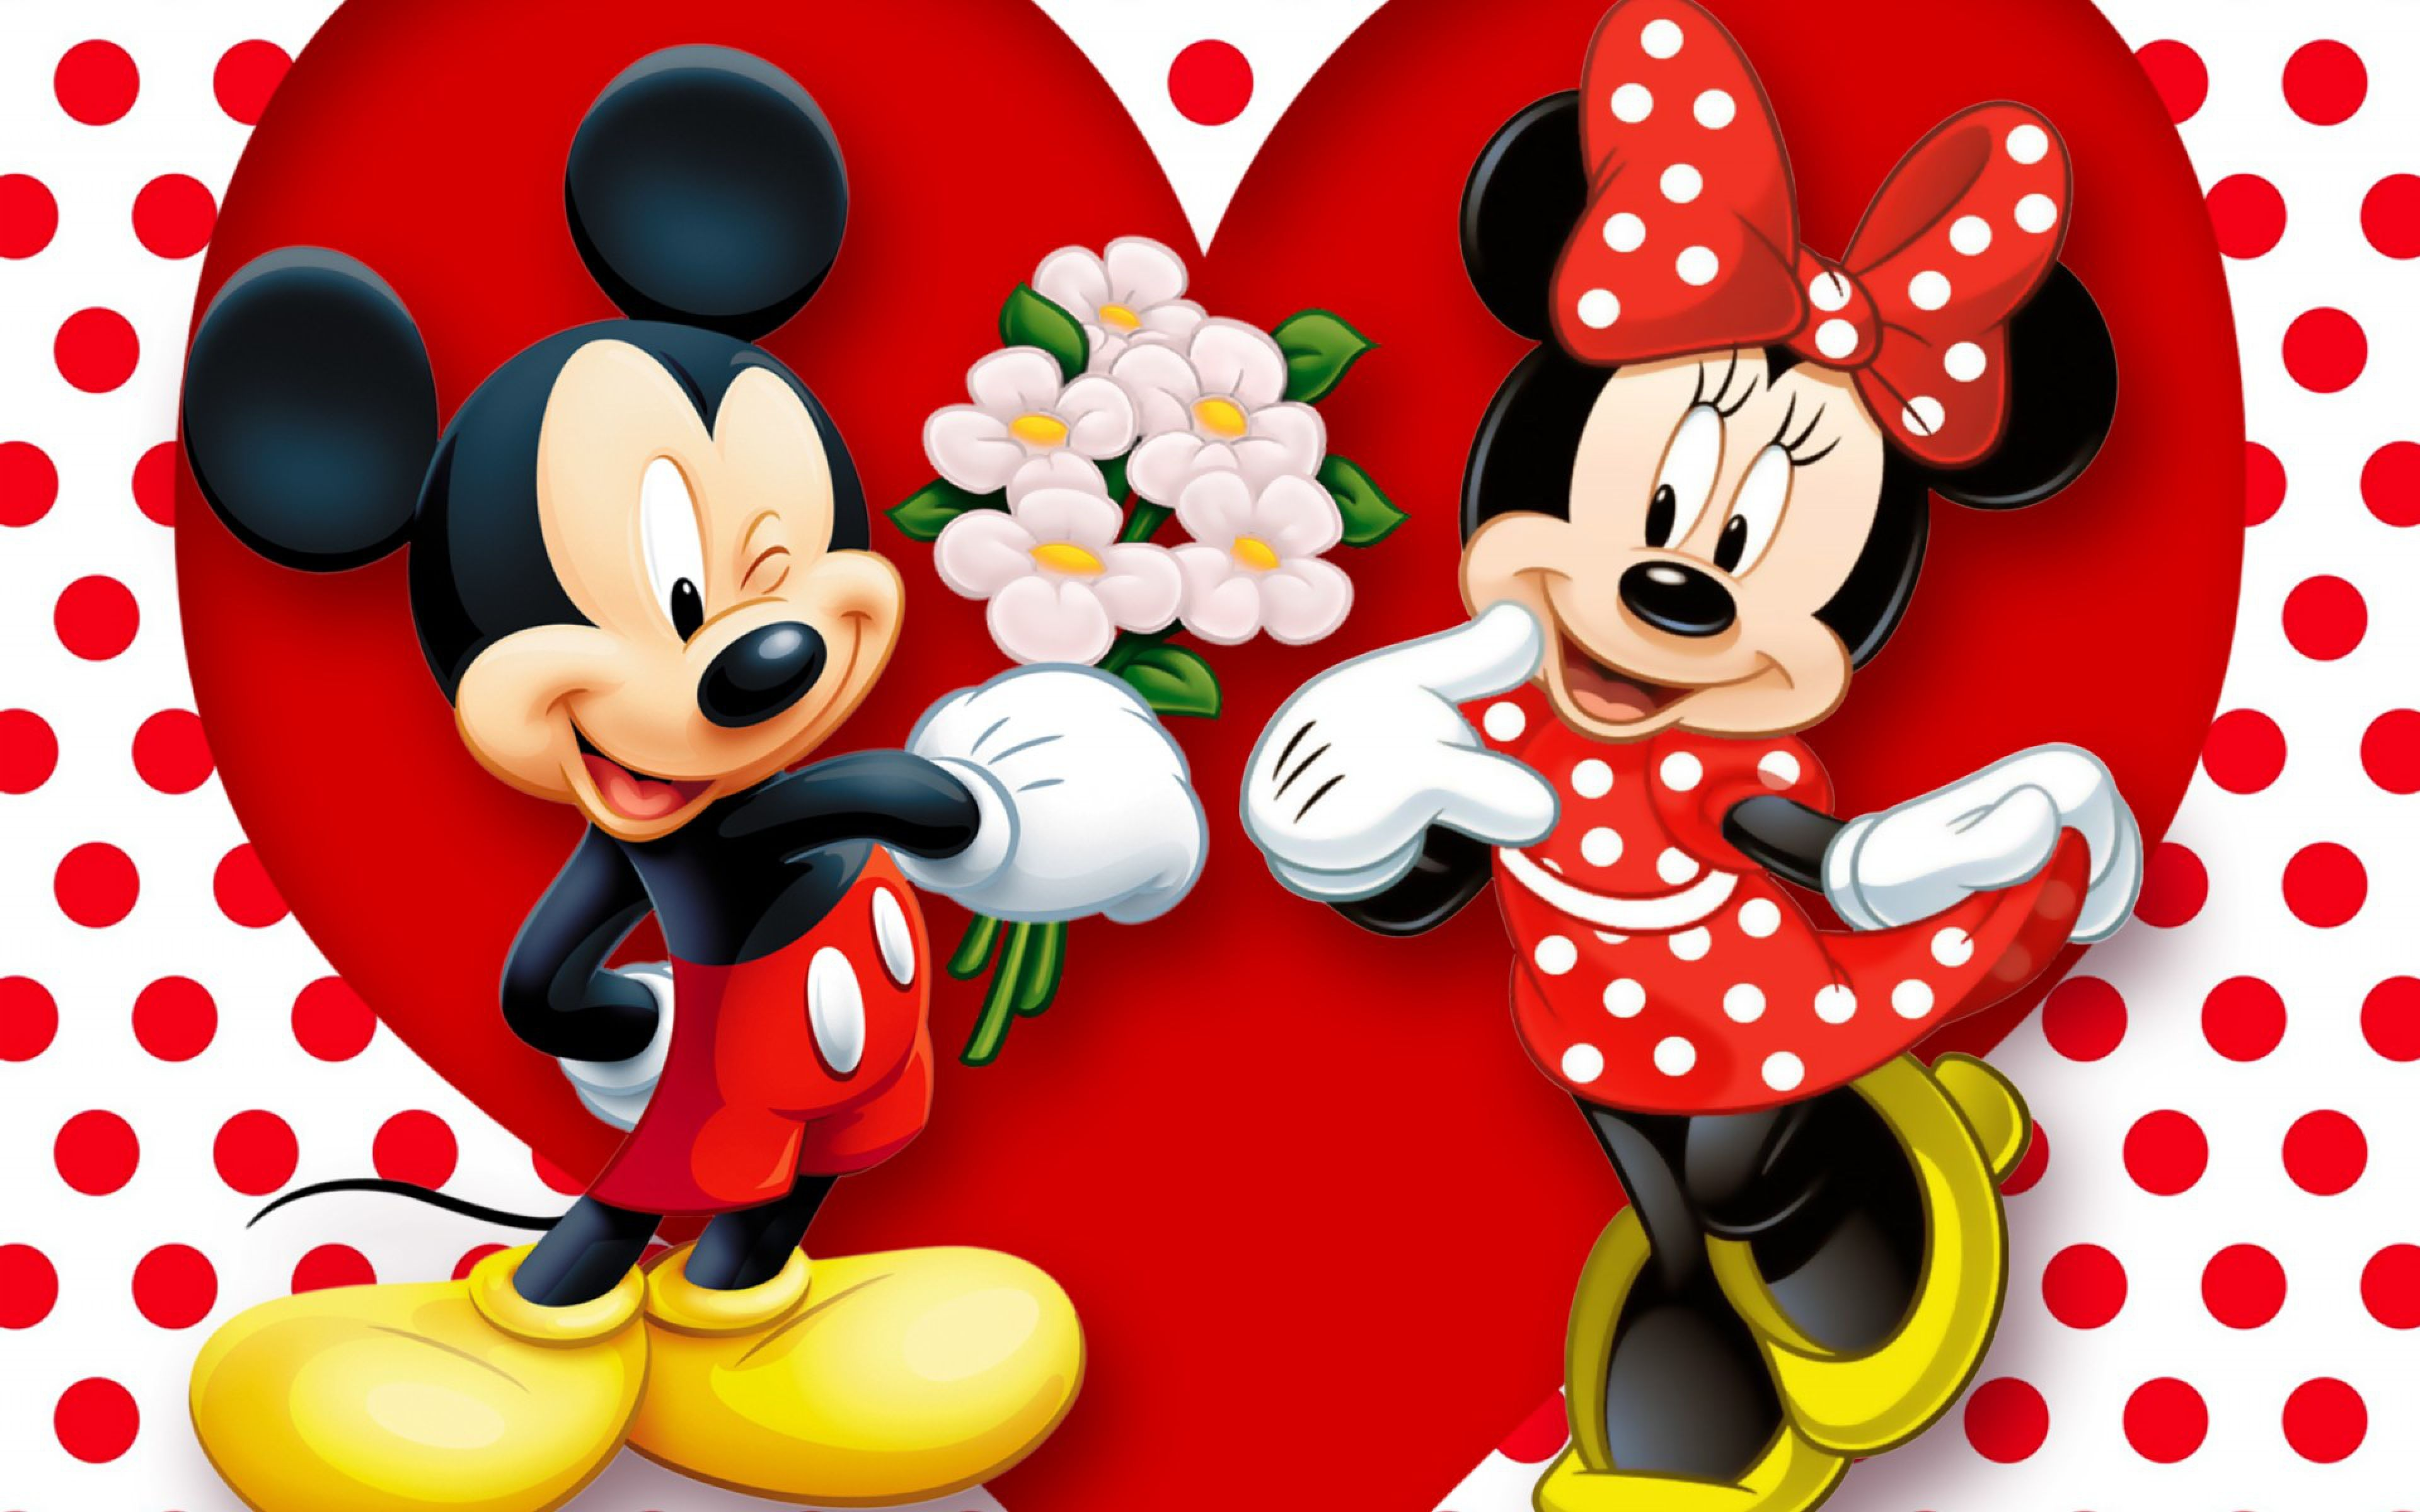 Mickey Mouse Wallpapers Download Wallpapers 2020 Mickey Mouse